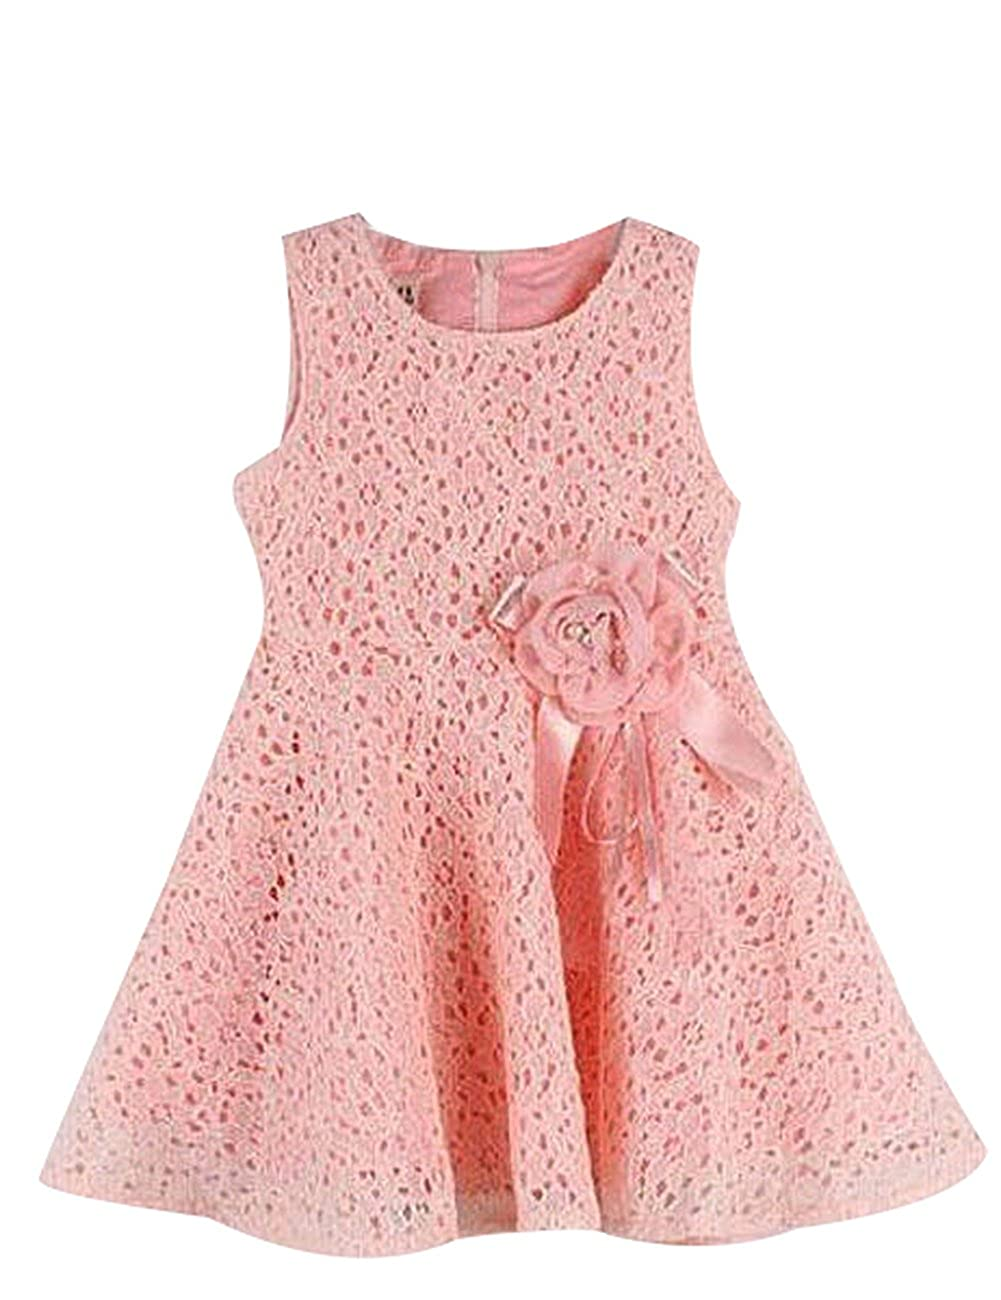 Kids Toddlers Girls Princess Party Flower Solid Lace Formal Dress